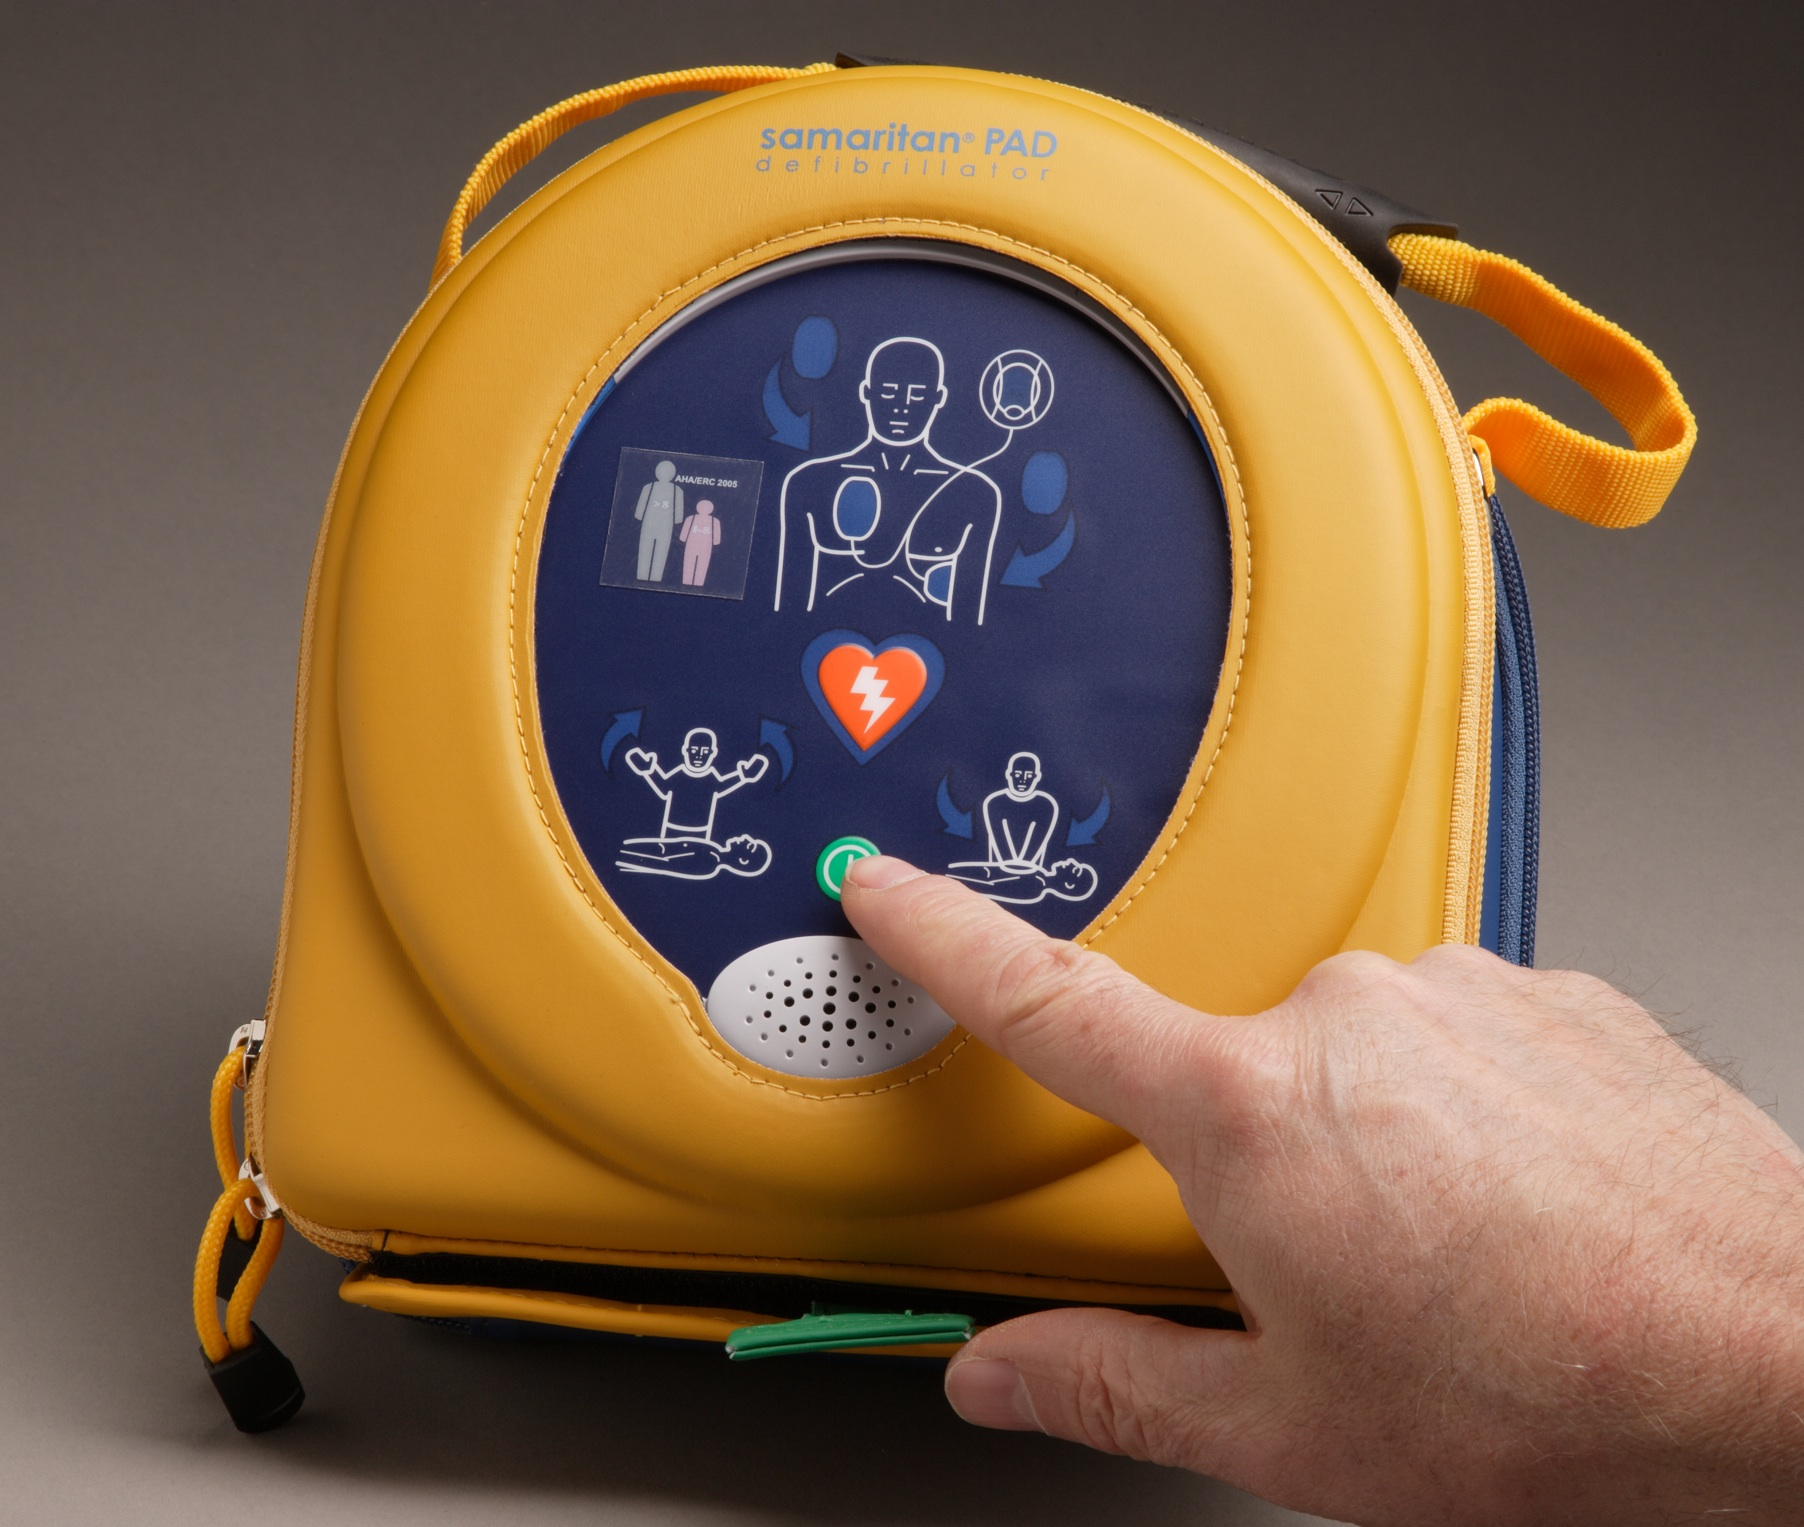 San jose cpr certification now offers a free american heart learn how to use an aed in the bls classe aha teaches how to use an aed in the bls for the healthcare provides cpr class xflitez Images